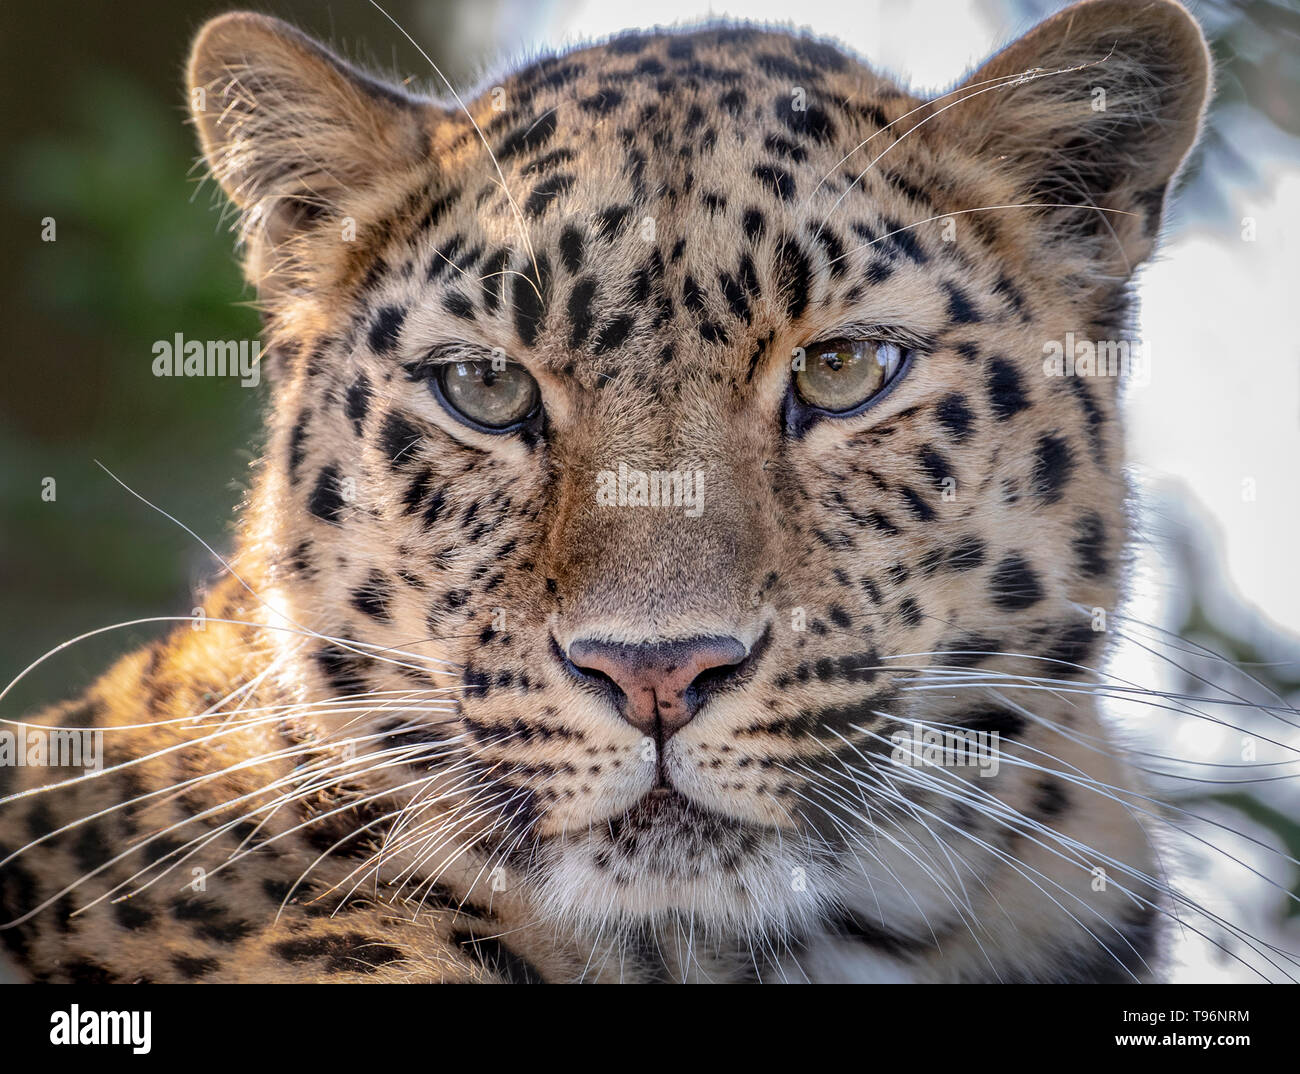 Female Amur leopard looking towards camera - Stock Image